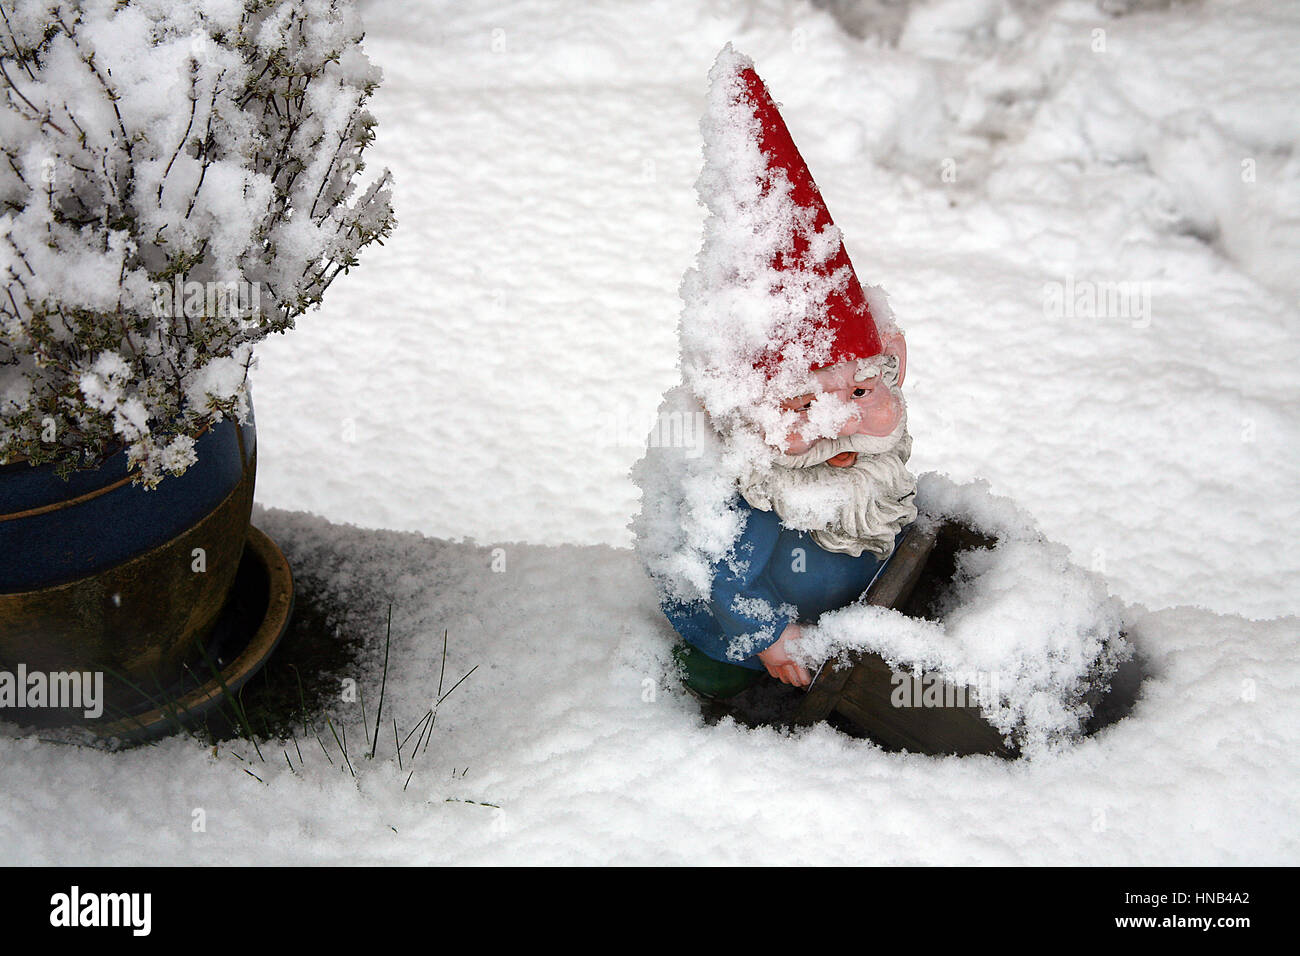 snow covered garden gnome in red pointy hat - Stock Image